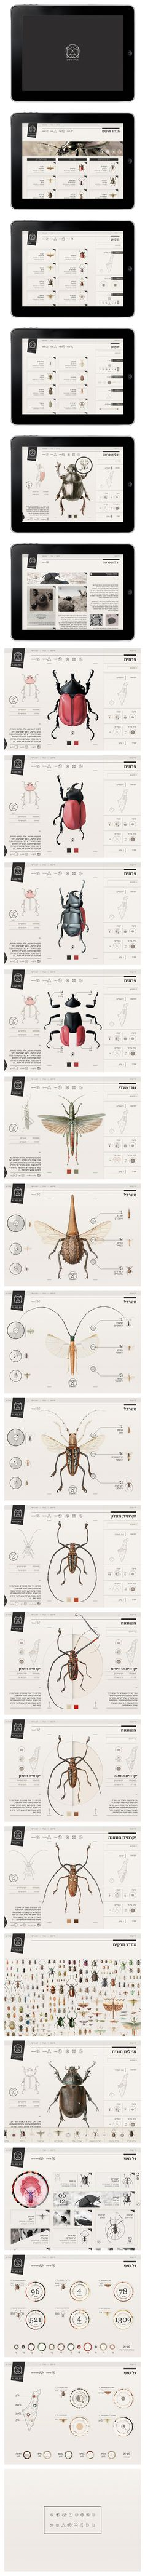 http://www.behance.net/gallery/Insect-Definer/8164527